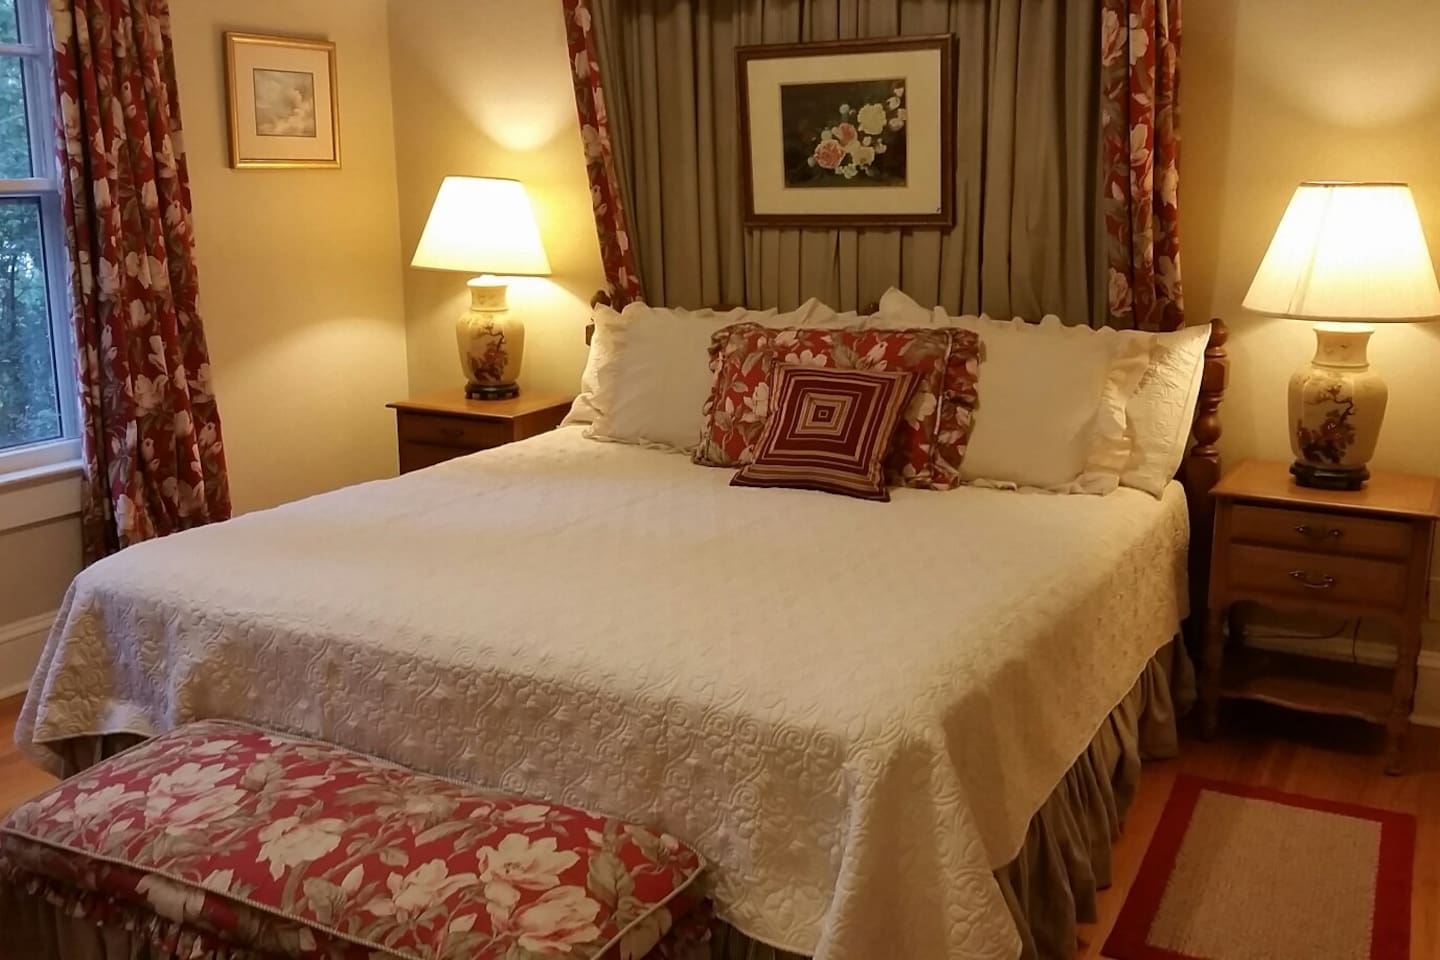 Rest well in this home in the comfortable king bed in the first bedroom